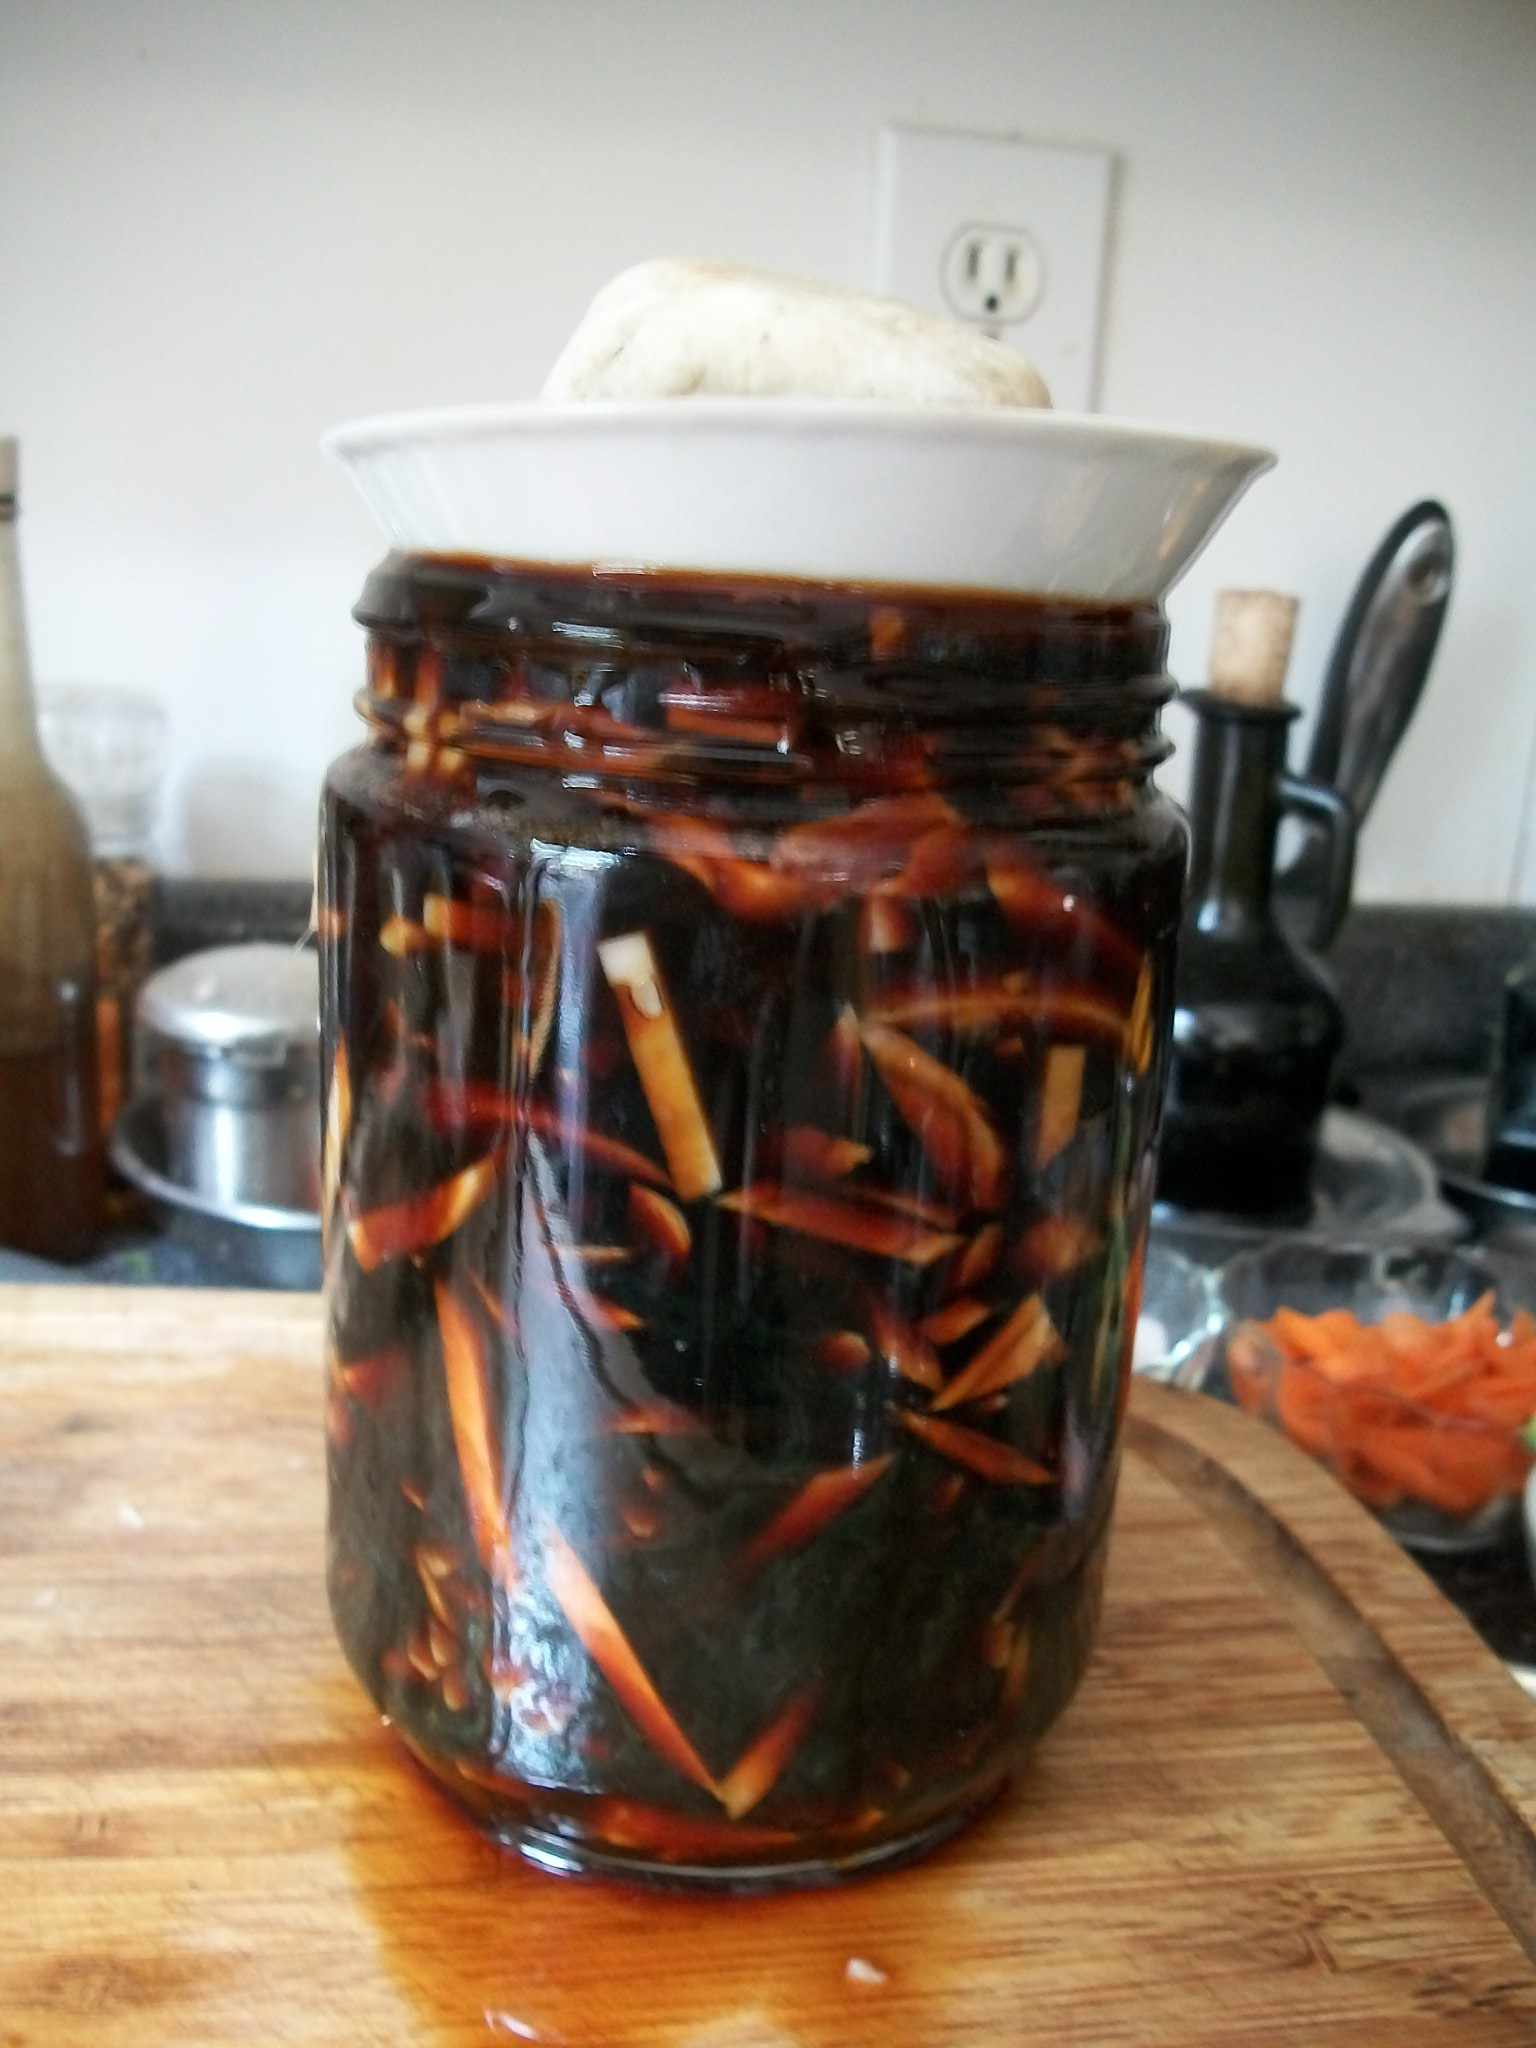 Fermented vegetables fermenting